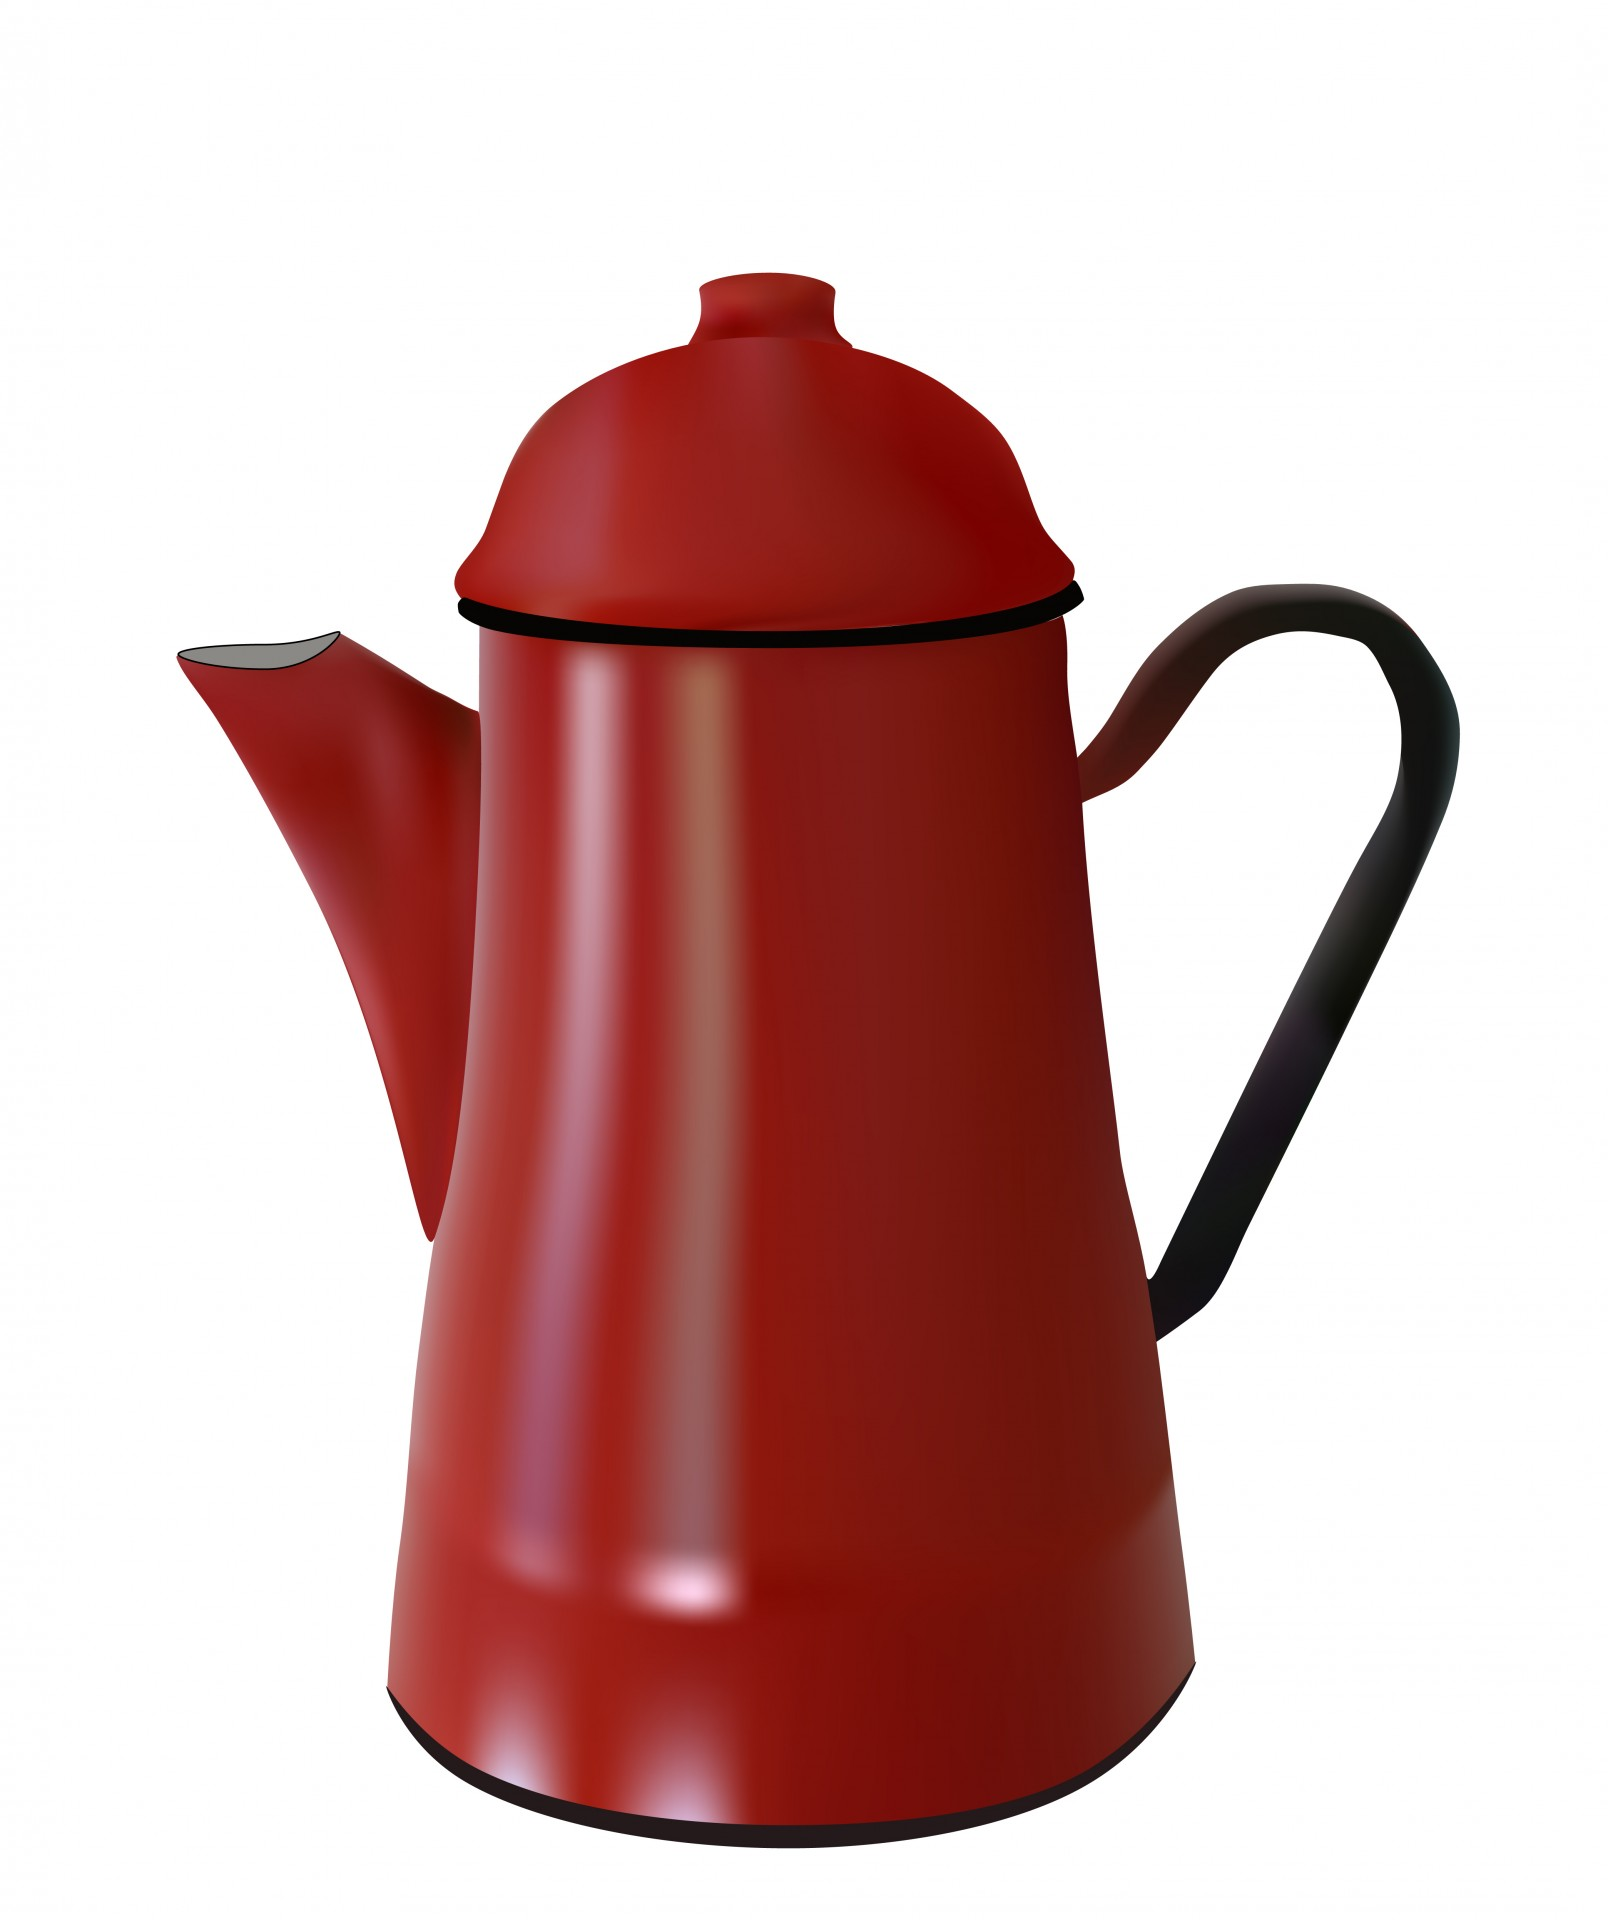 Coffee Pot Planter Red Coffee Pot Clipart Free Stock Photo Public Domain